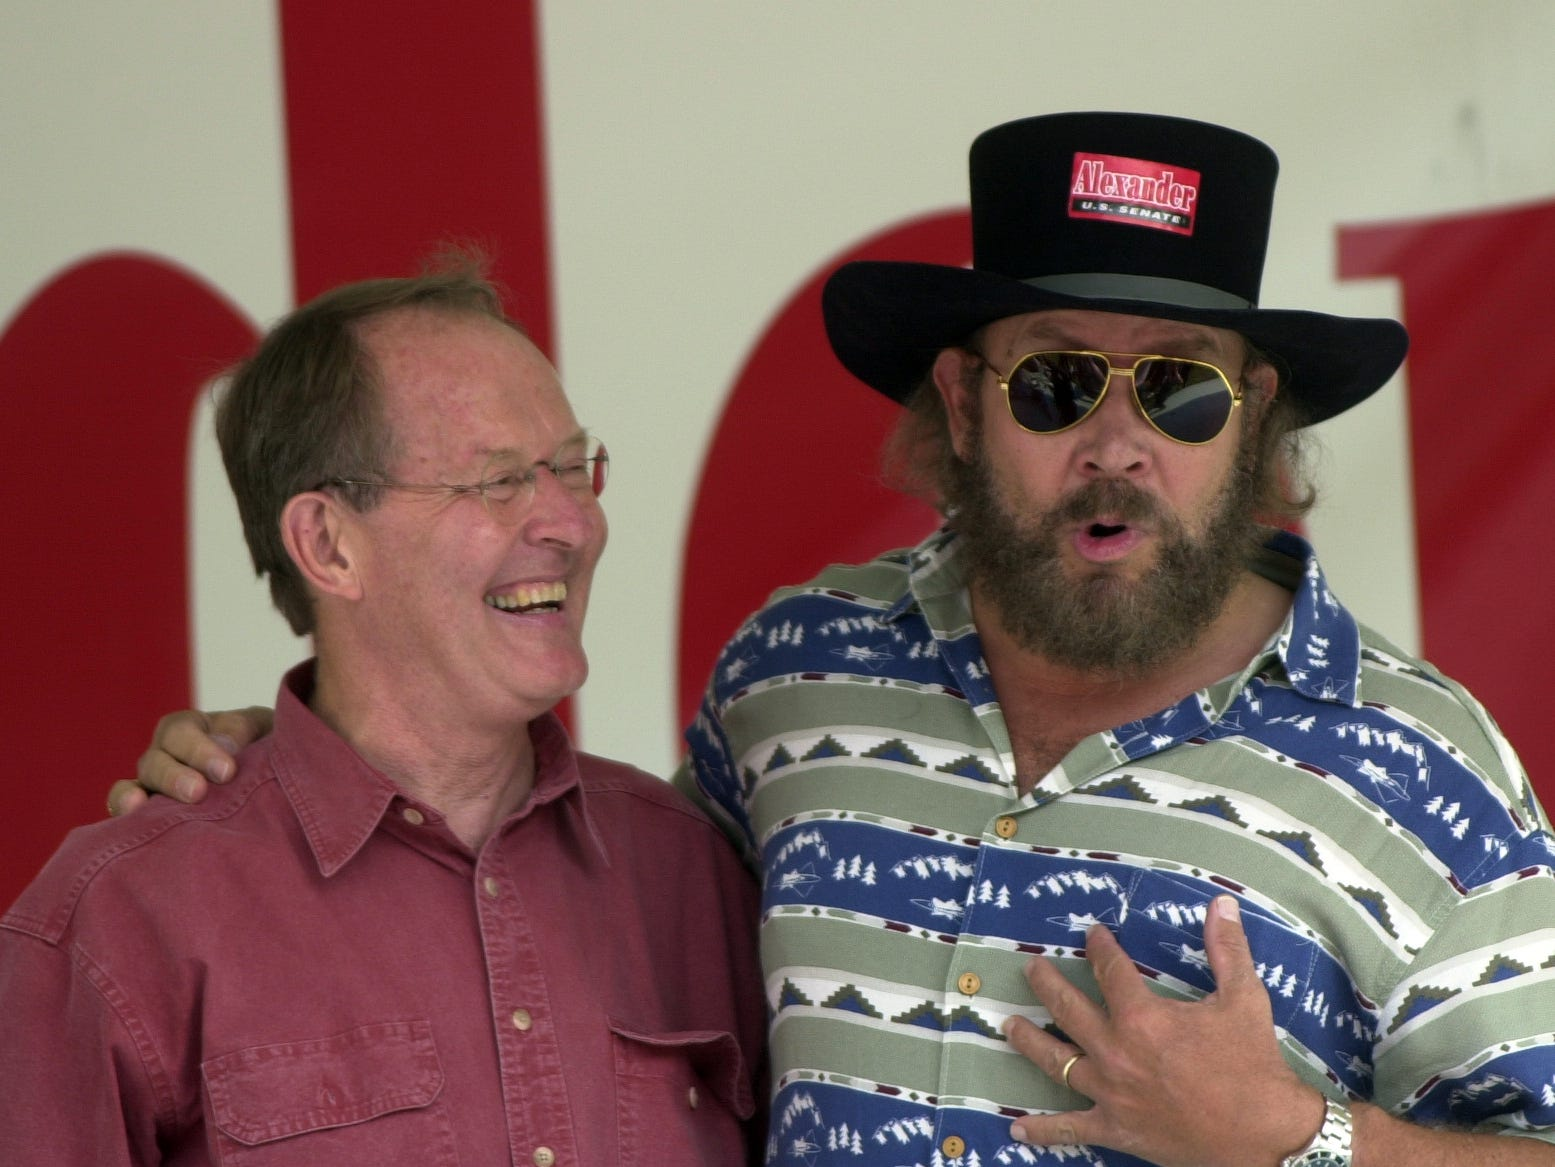 Country singer Hank Williams Jr., right, hams it up with U.S. Senate candidate Lamar Alexander during a rally Sunday, July 21, 2002, at the Museum of Appalachia. Alexander is running against U.S. Rep. Ed Bryant in the Republican primary for the U.S. Senate.